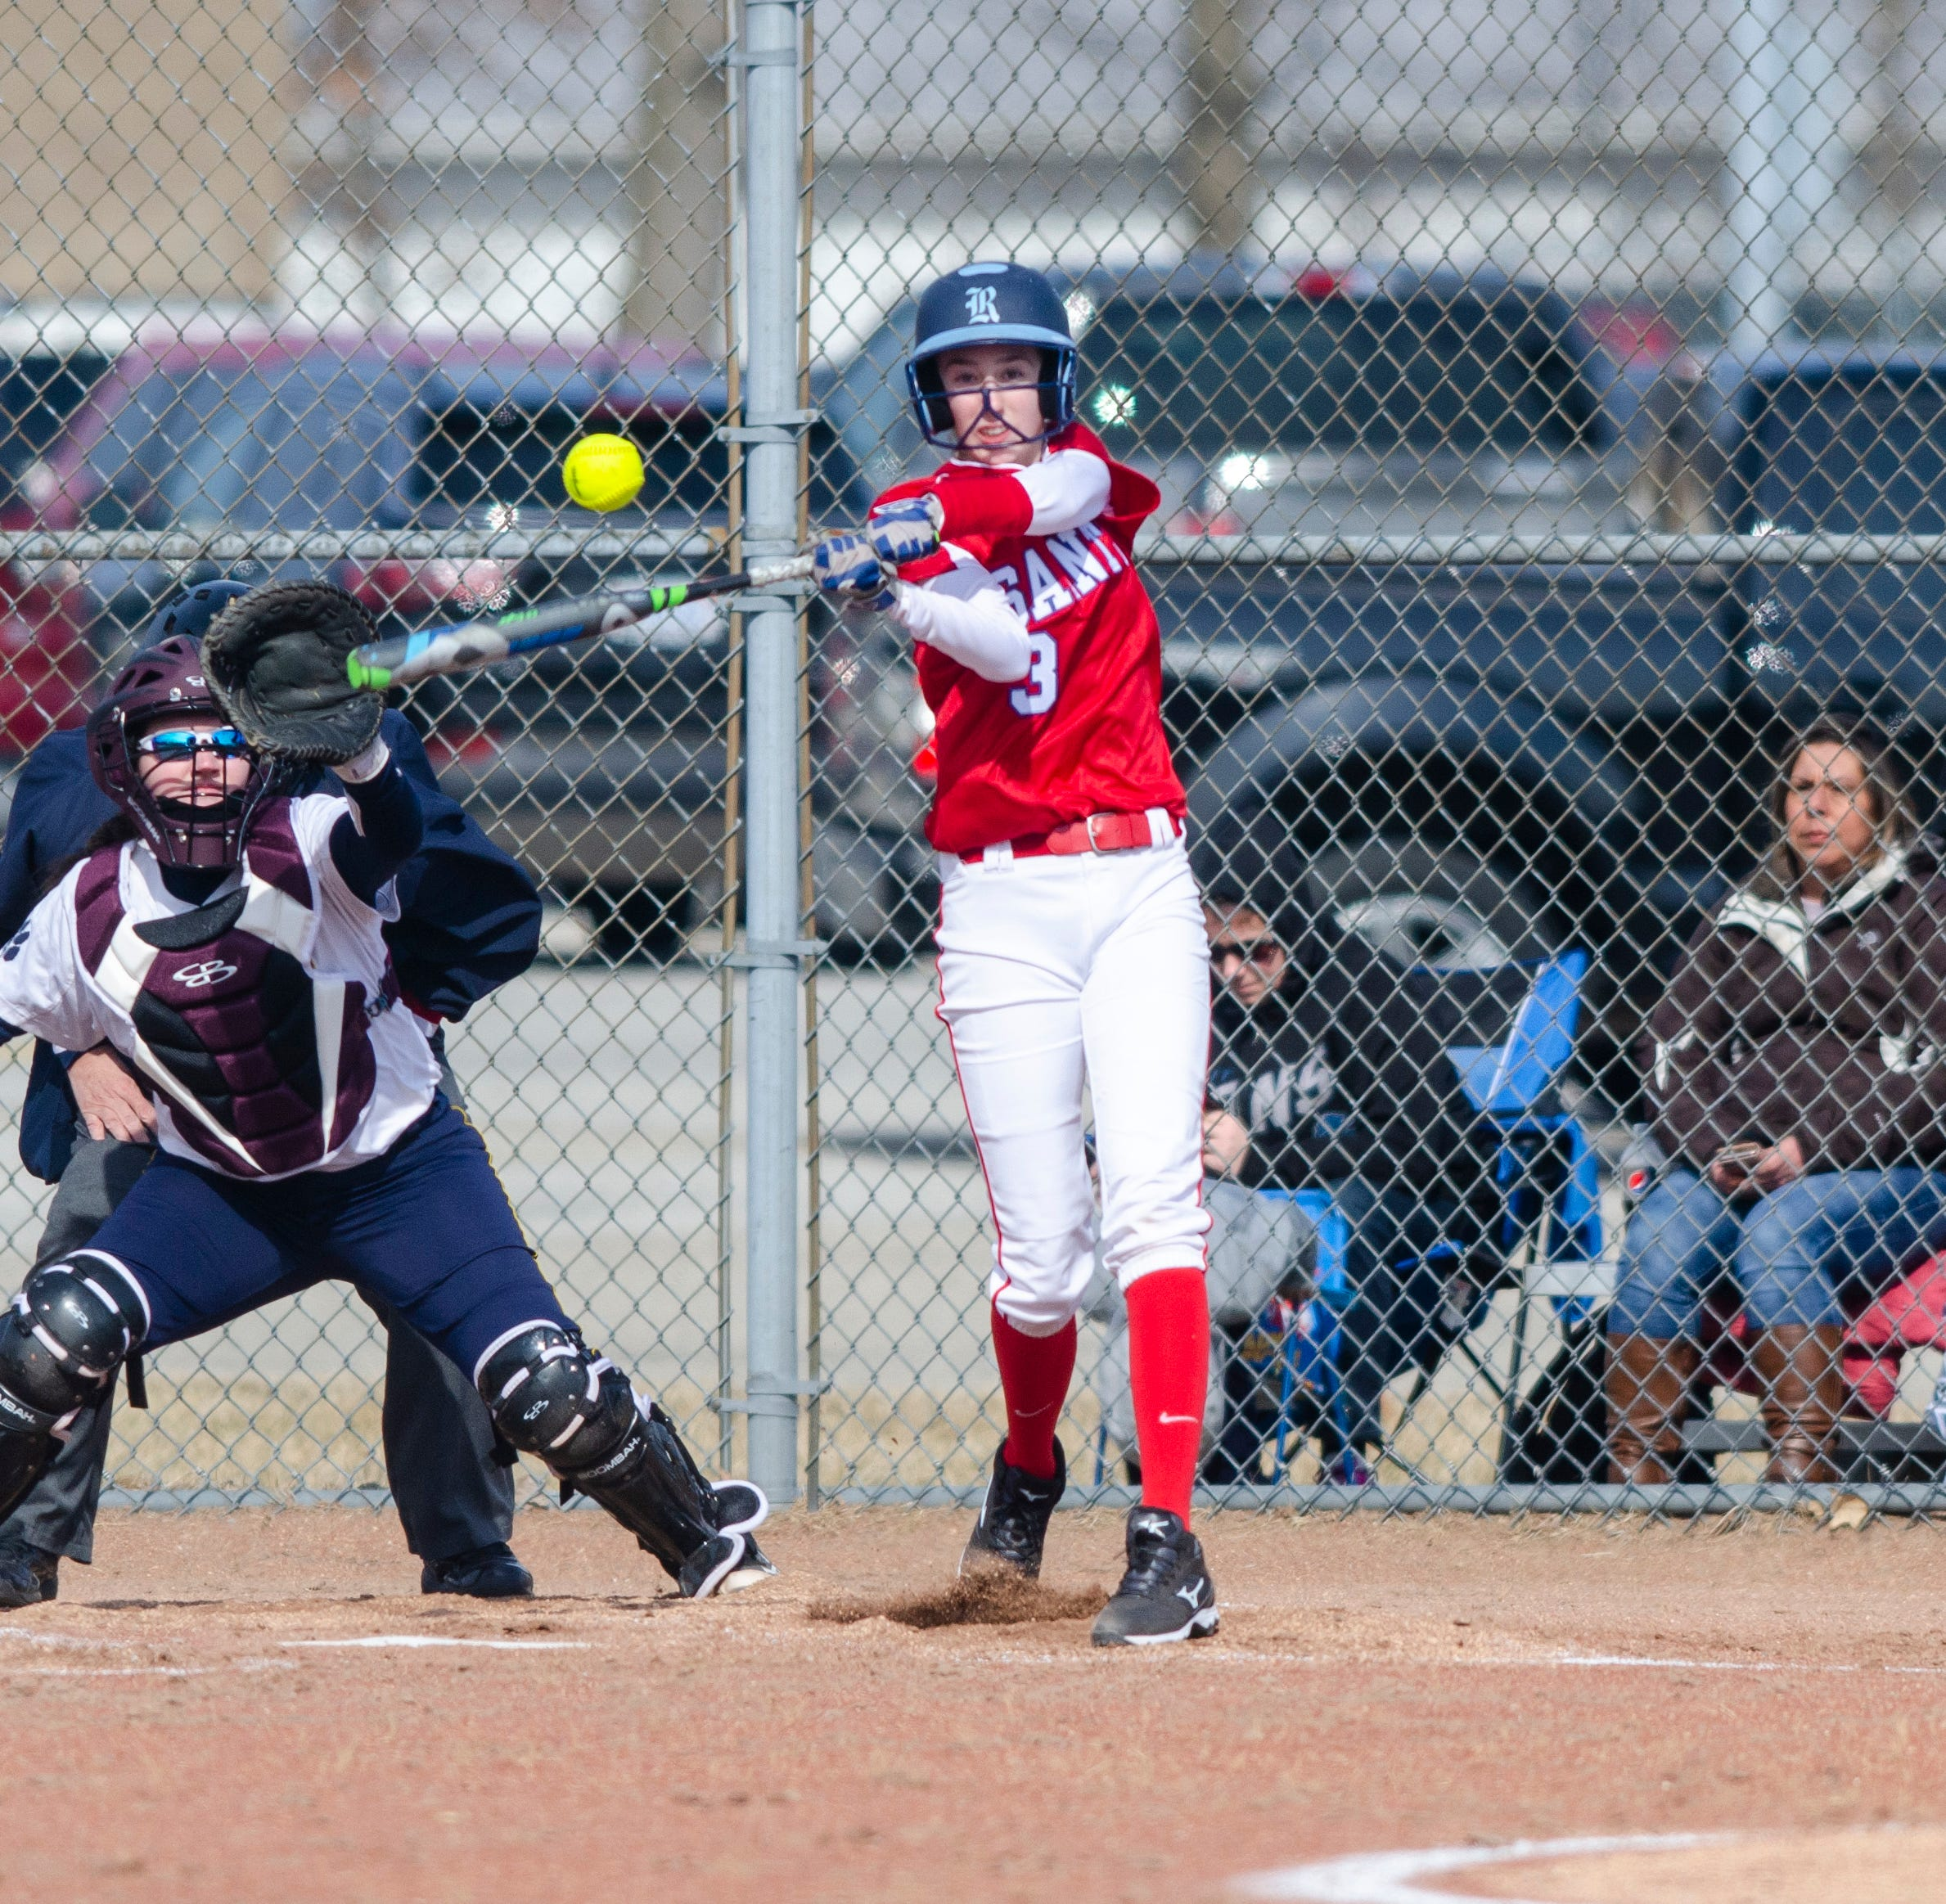 Softball Opener: Port Huron Northern defeats St. Clair, 14-10